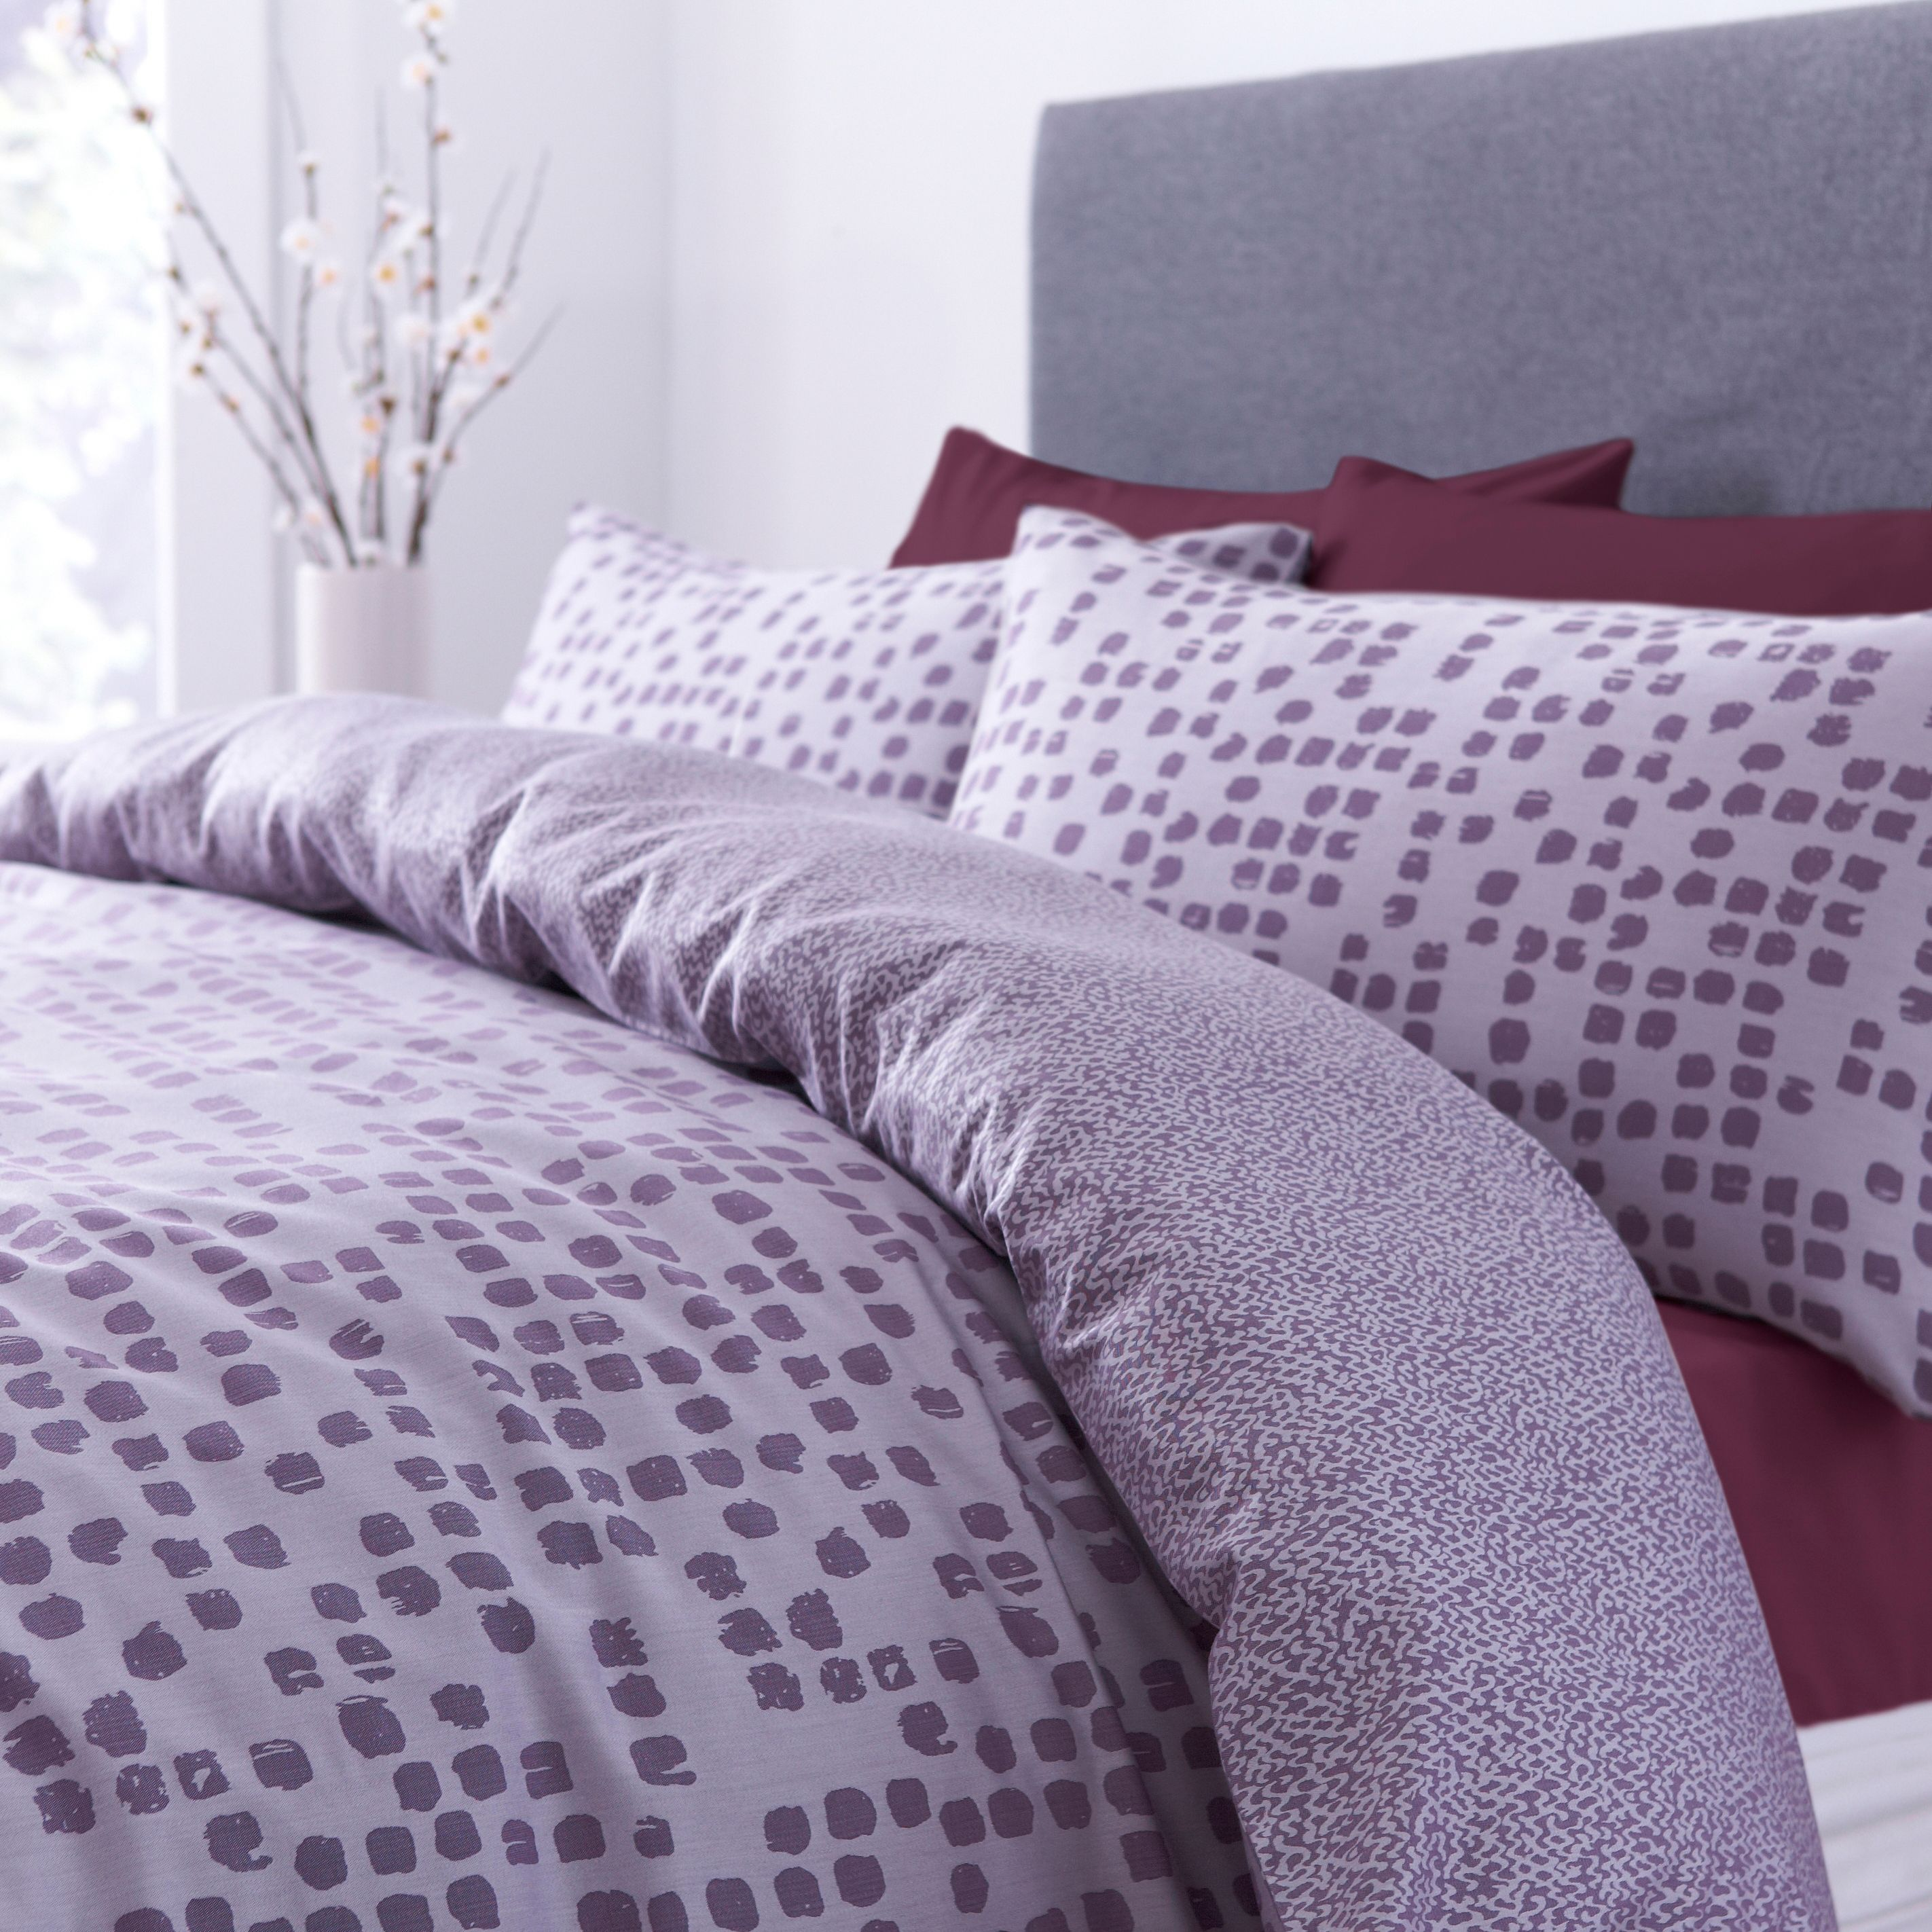 Musetta spot housewive pillowcase pair